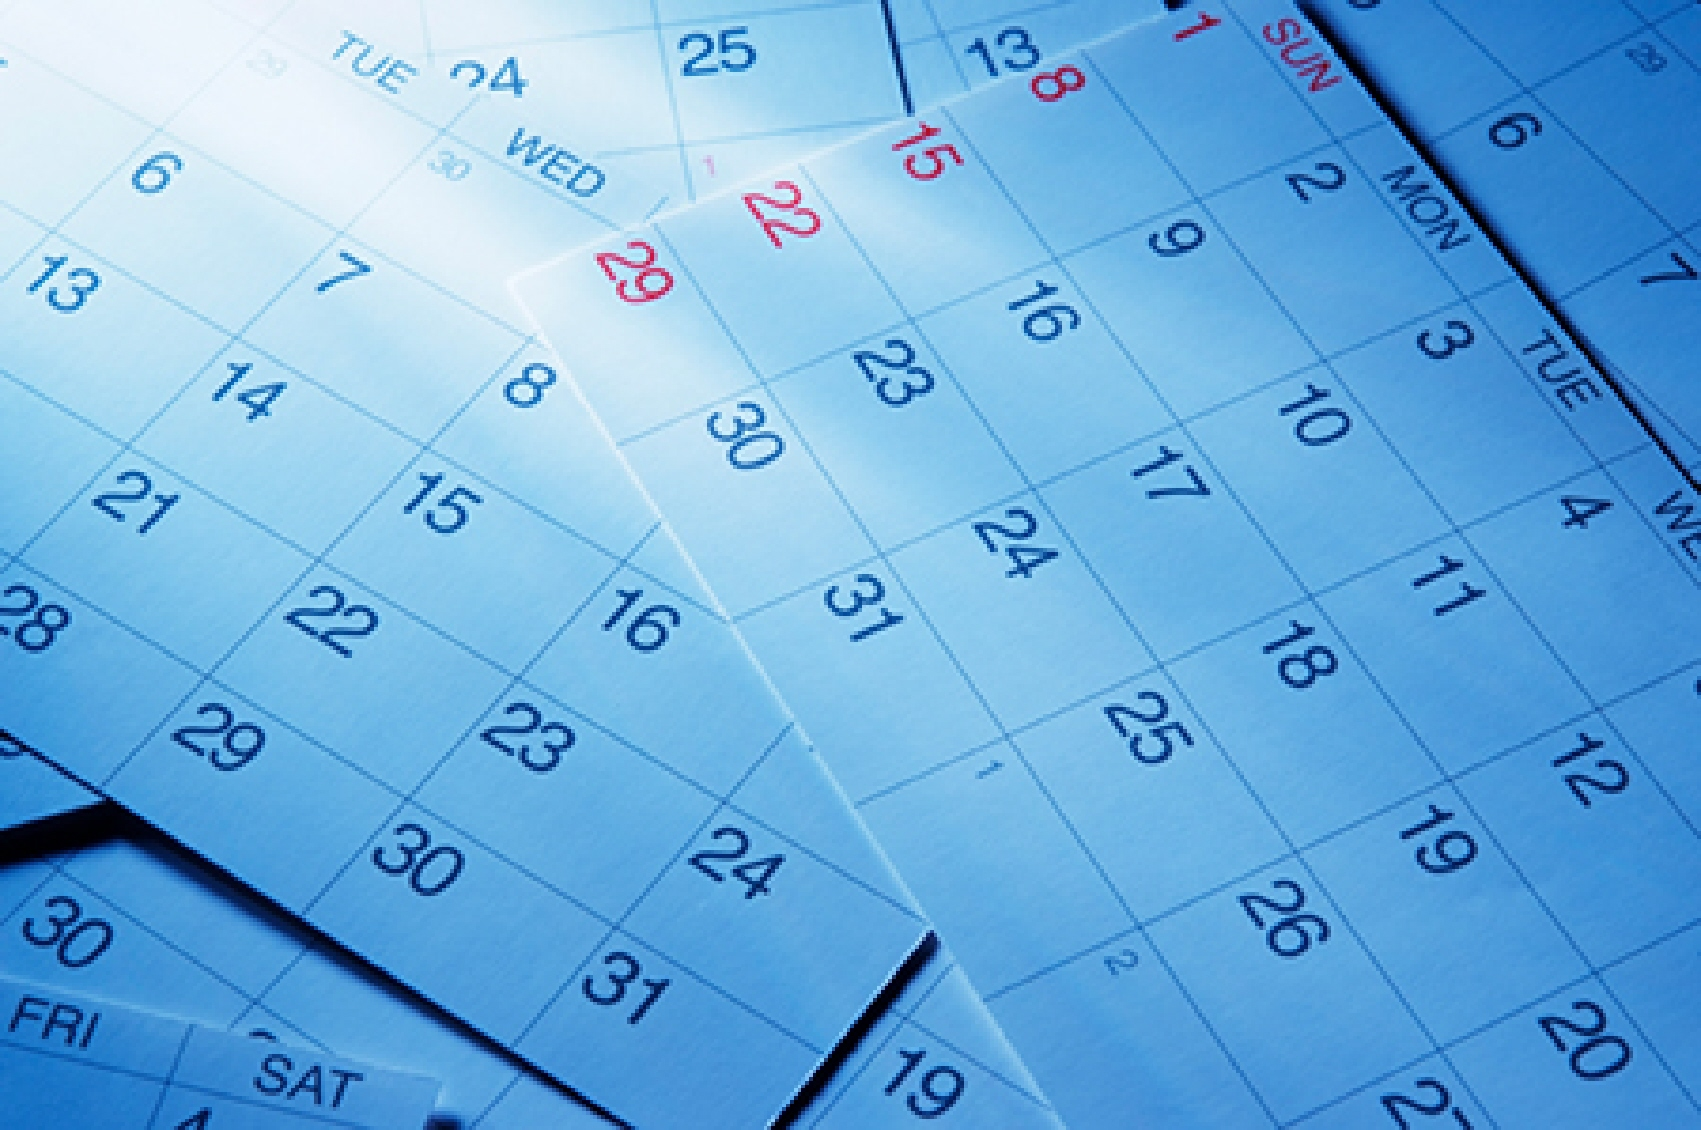 Calendar Gregorian Vs The Difference Between Julian And Gregorian Calendars My Fellow Americans Bla Bla Bla… Pearlsofprofundity